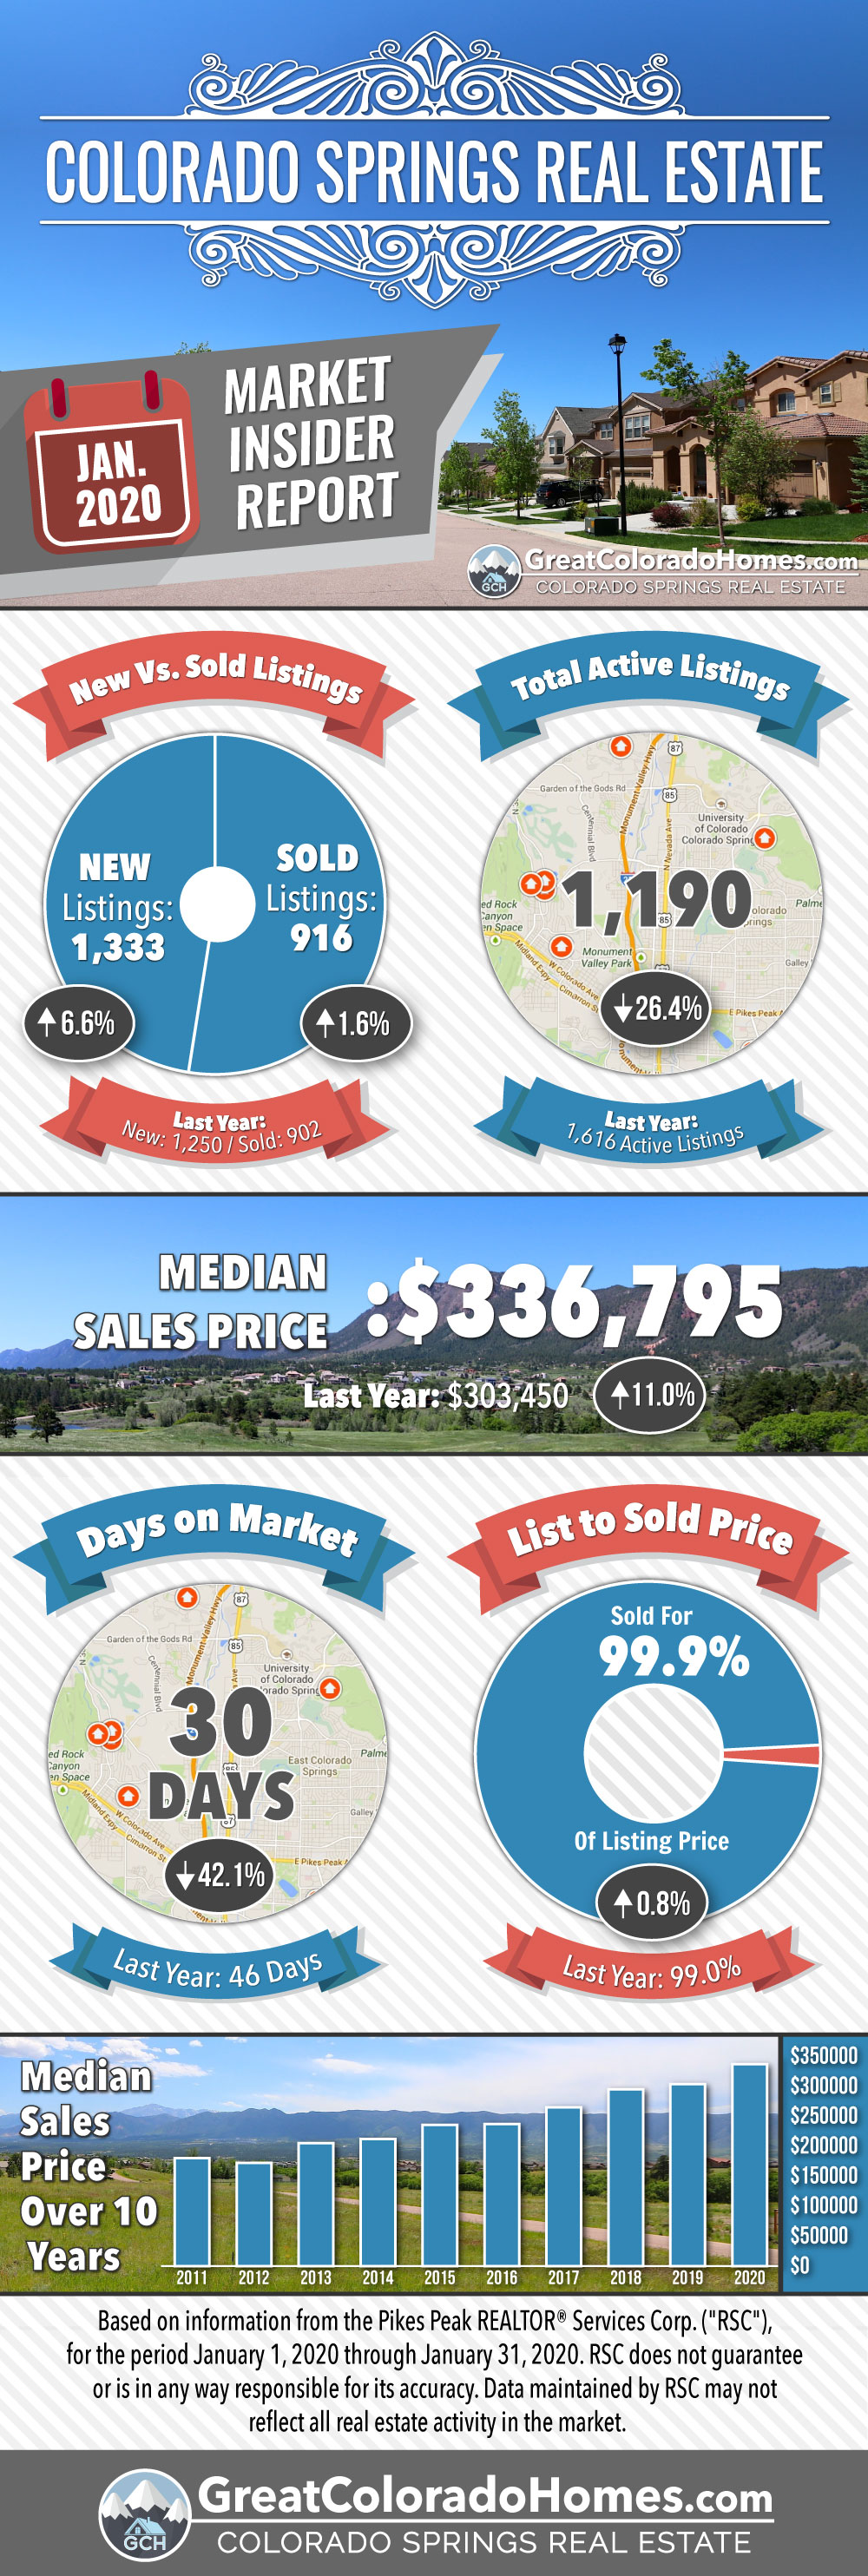 January 2020 Colorado Springs Real Estate Market Statistics Infographic